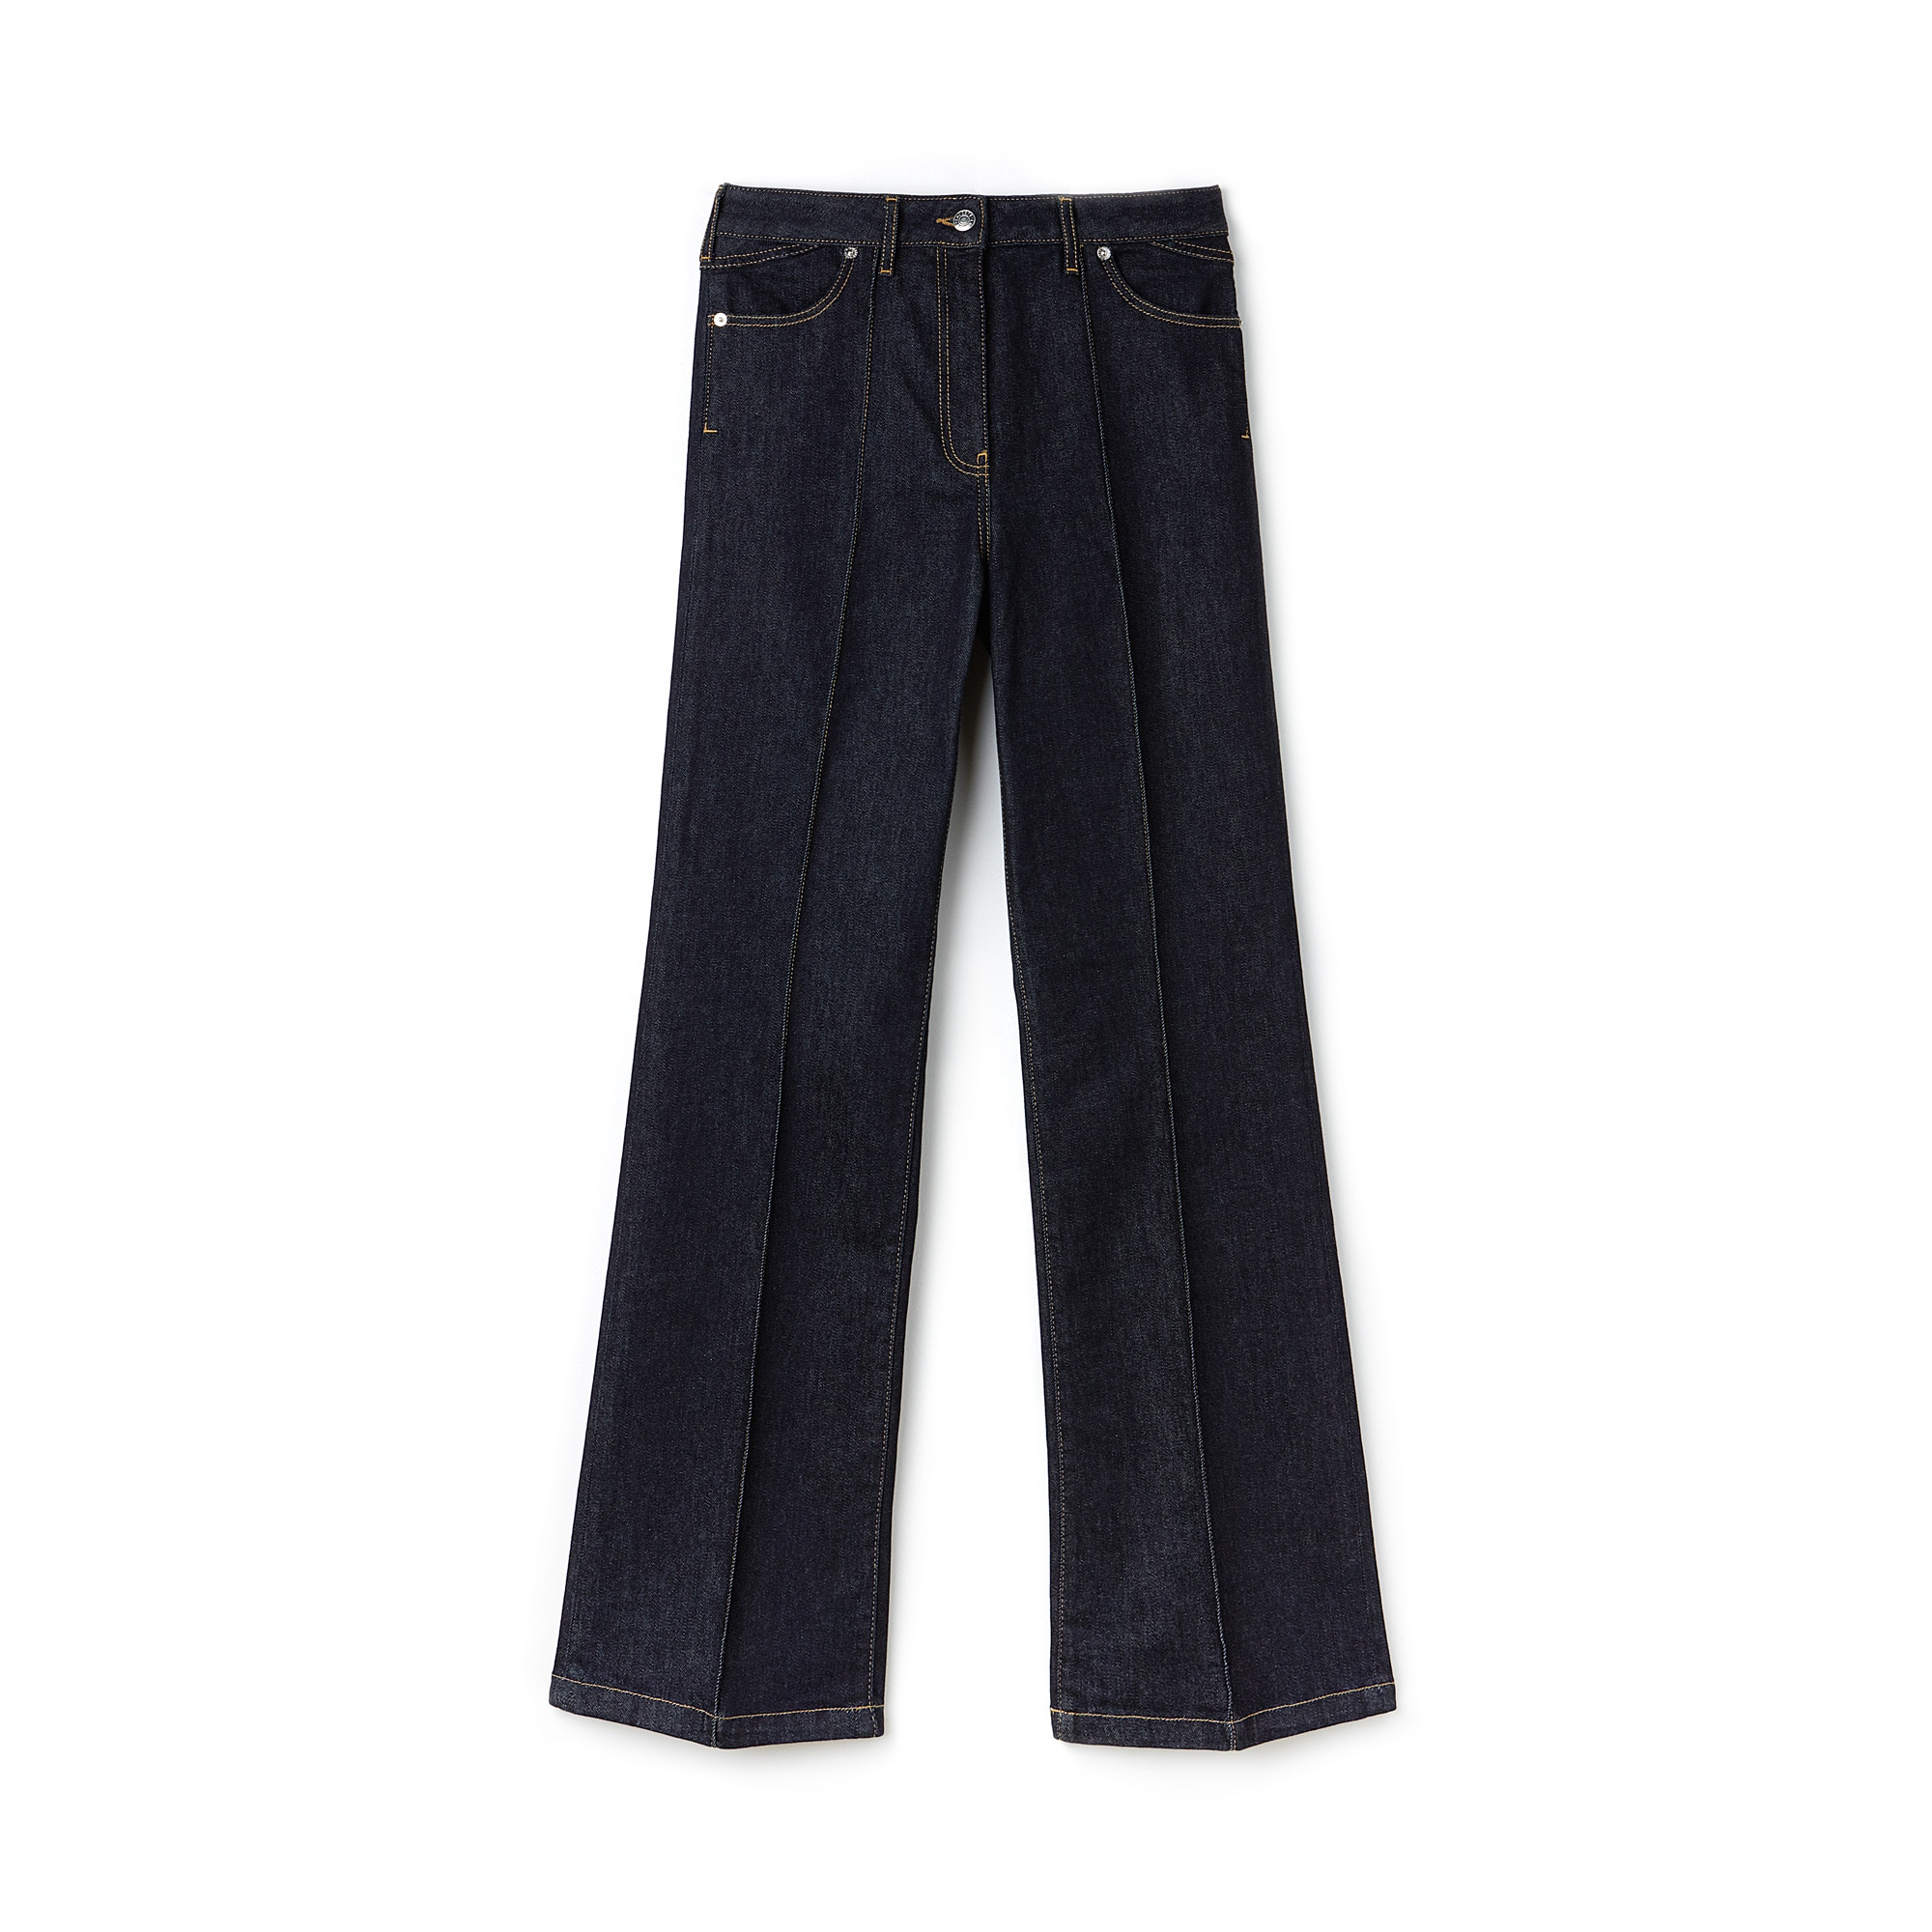 Women's Boot Cut Stretch Cotton Denim Jeans